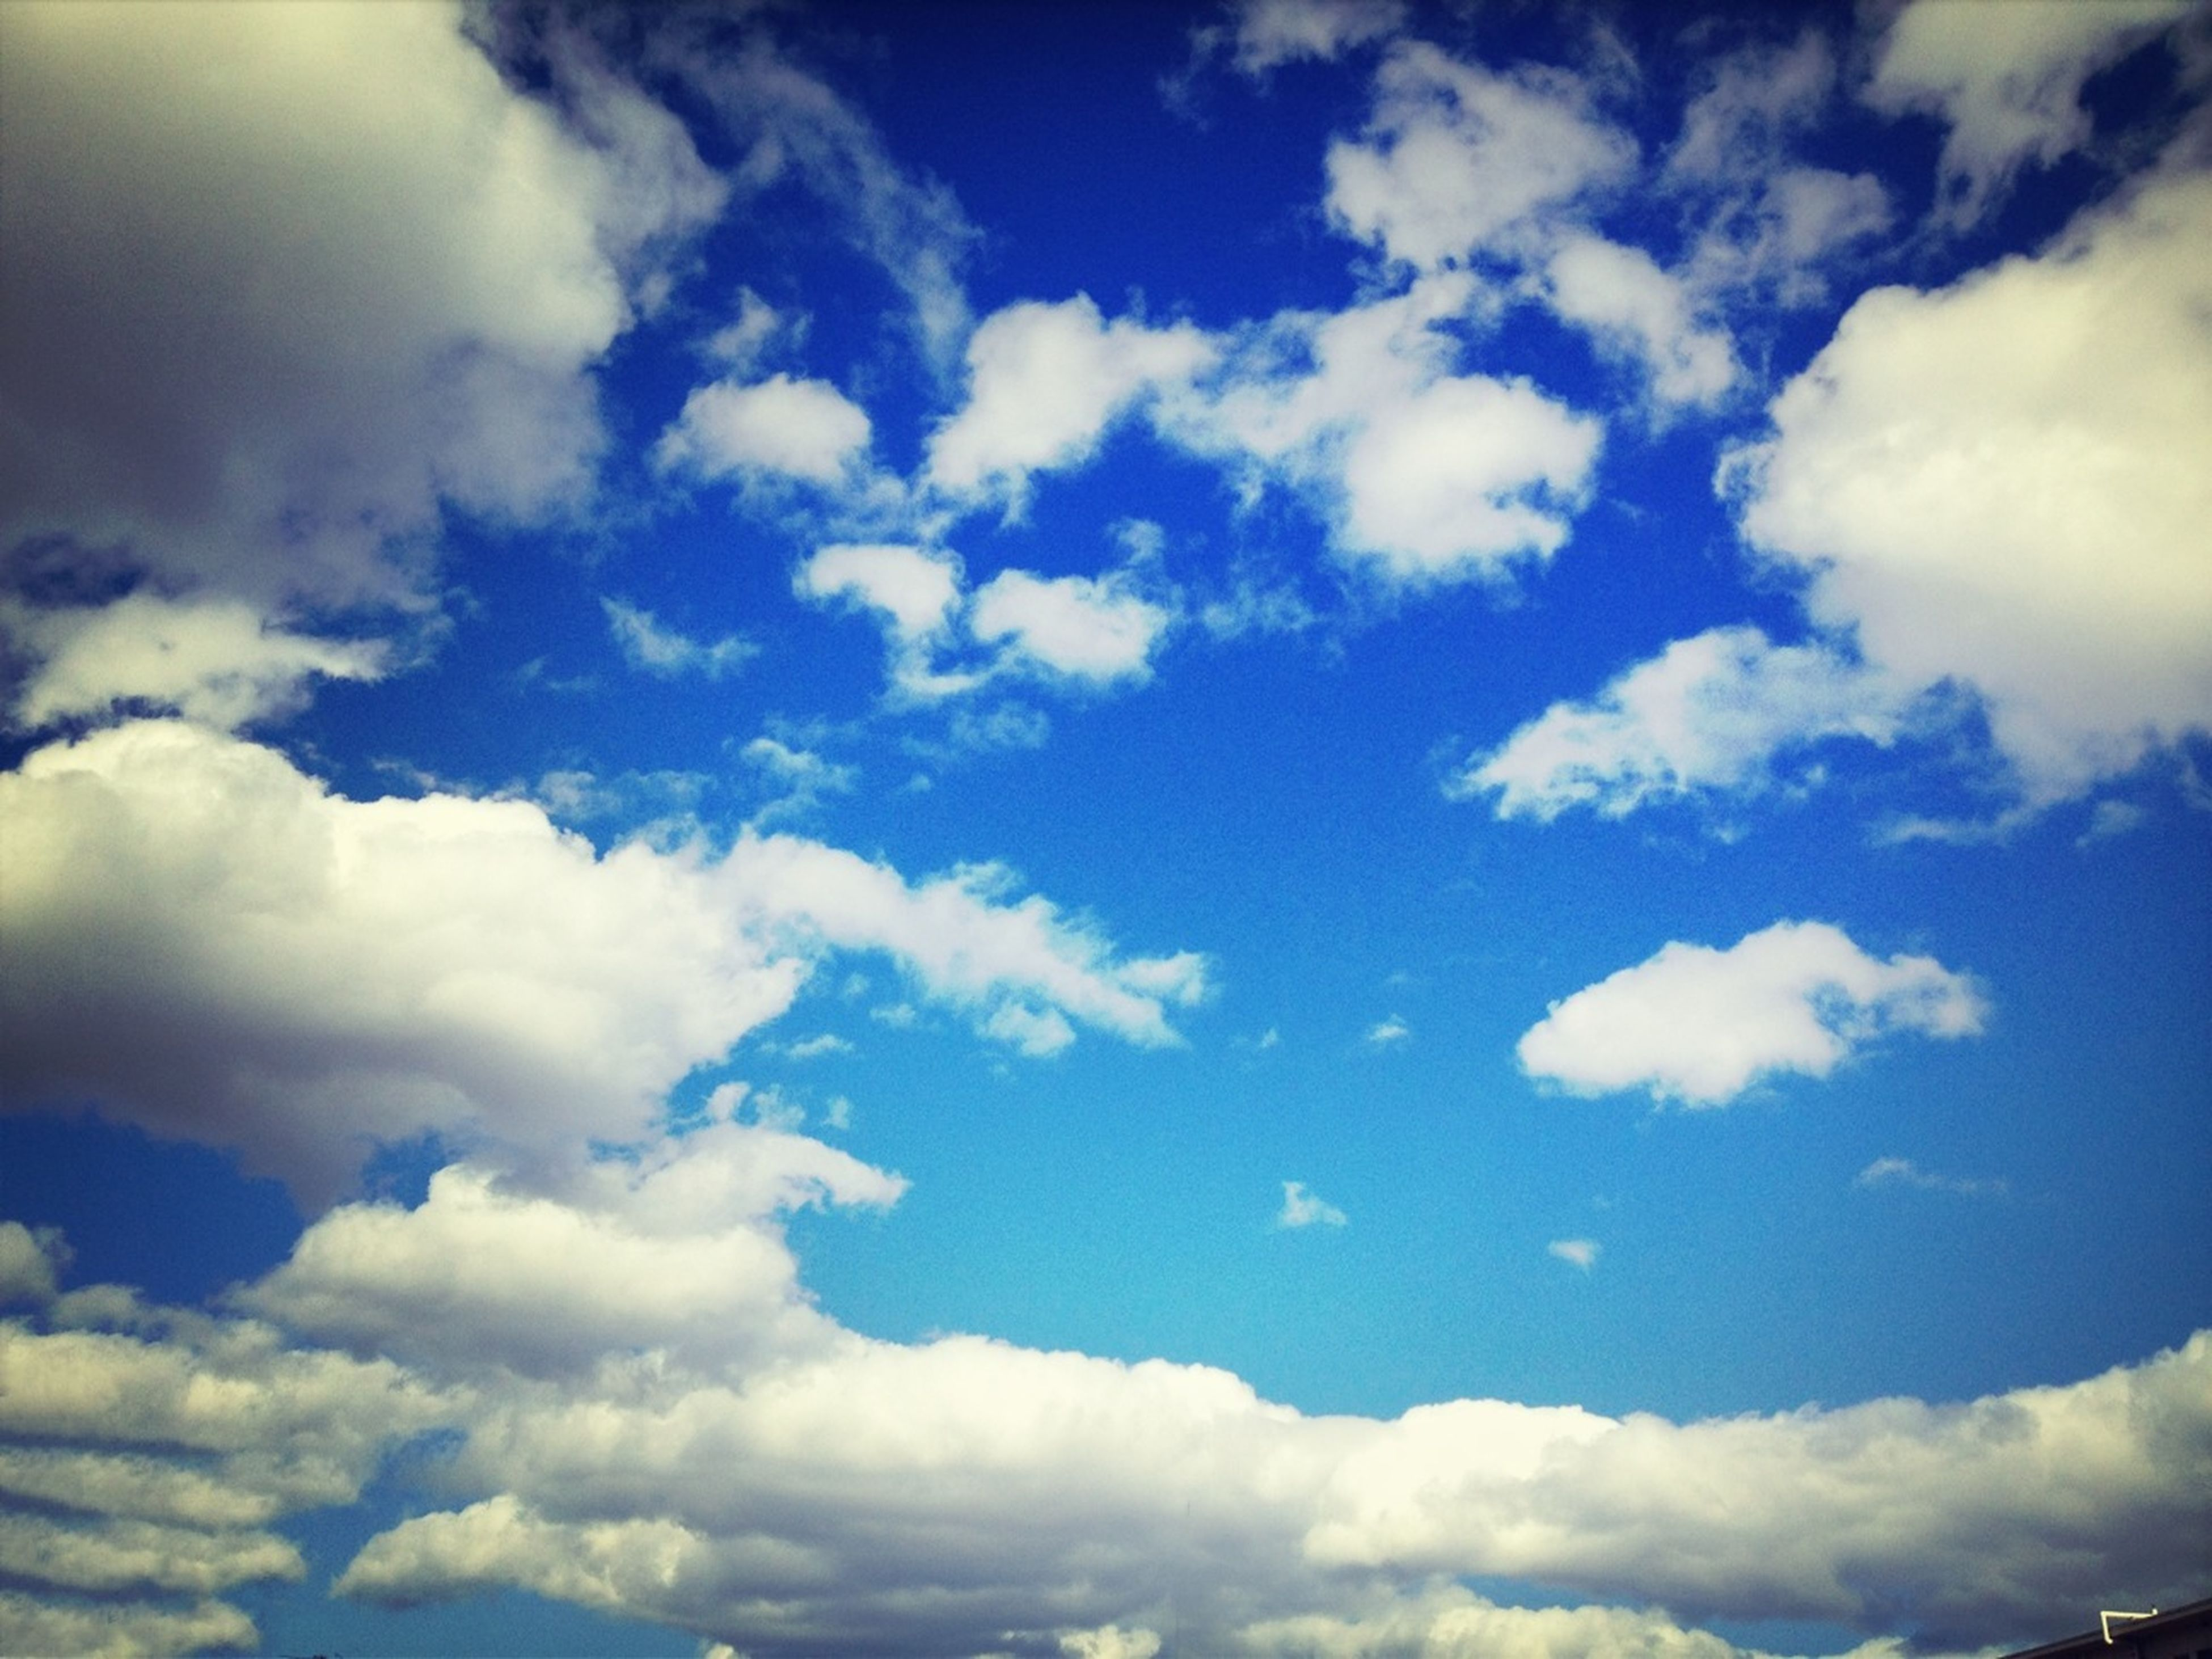 sky, cloud - sky, low angle view, beauty in nature, sky only, tranquility, scenics, blue, nature, cloudscape, cloudy, tranquil scene, cloud, white color, backgrounds, idyllic, fluffy, white, day, outdoors